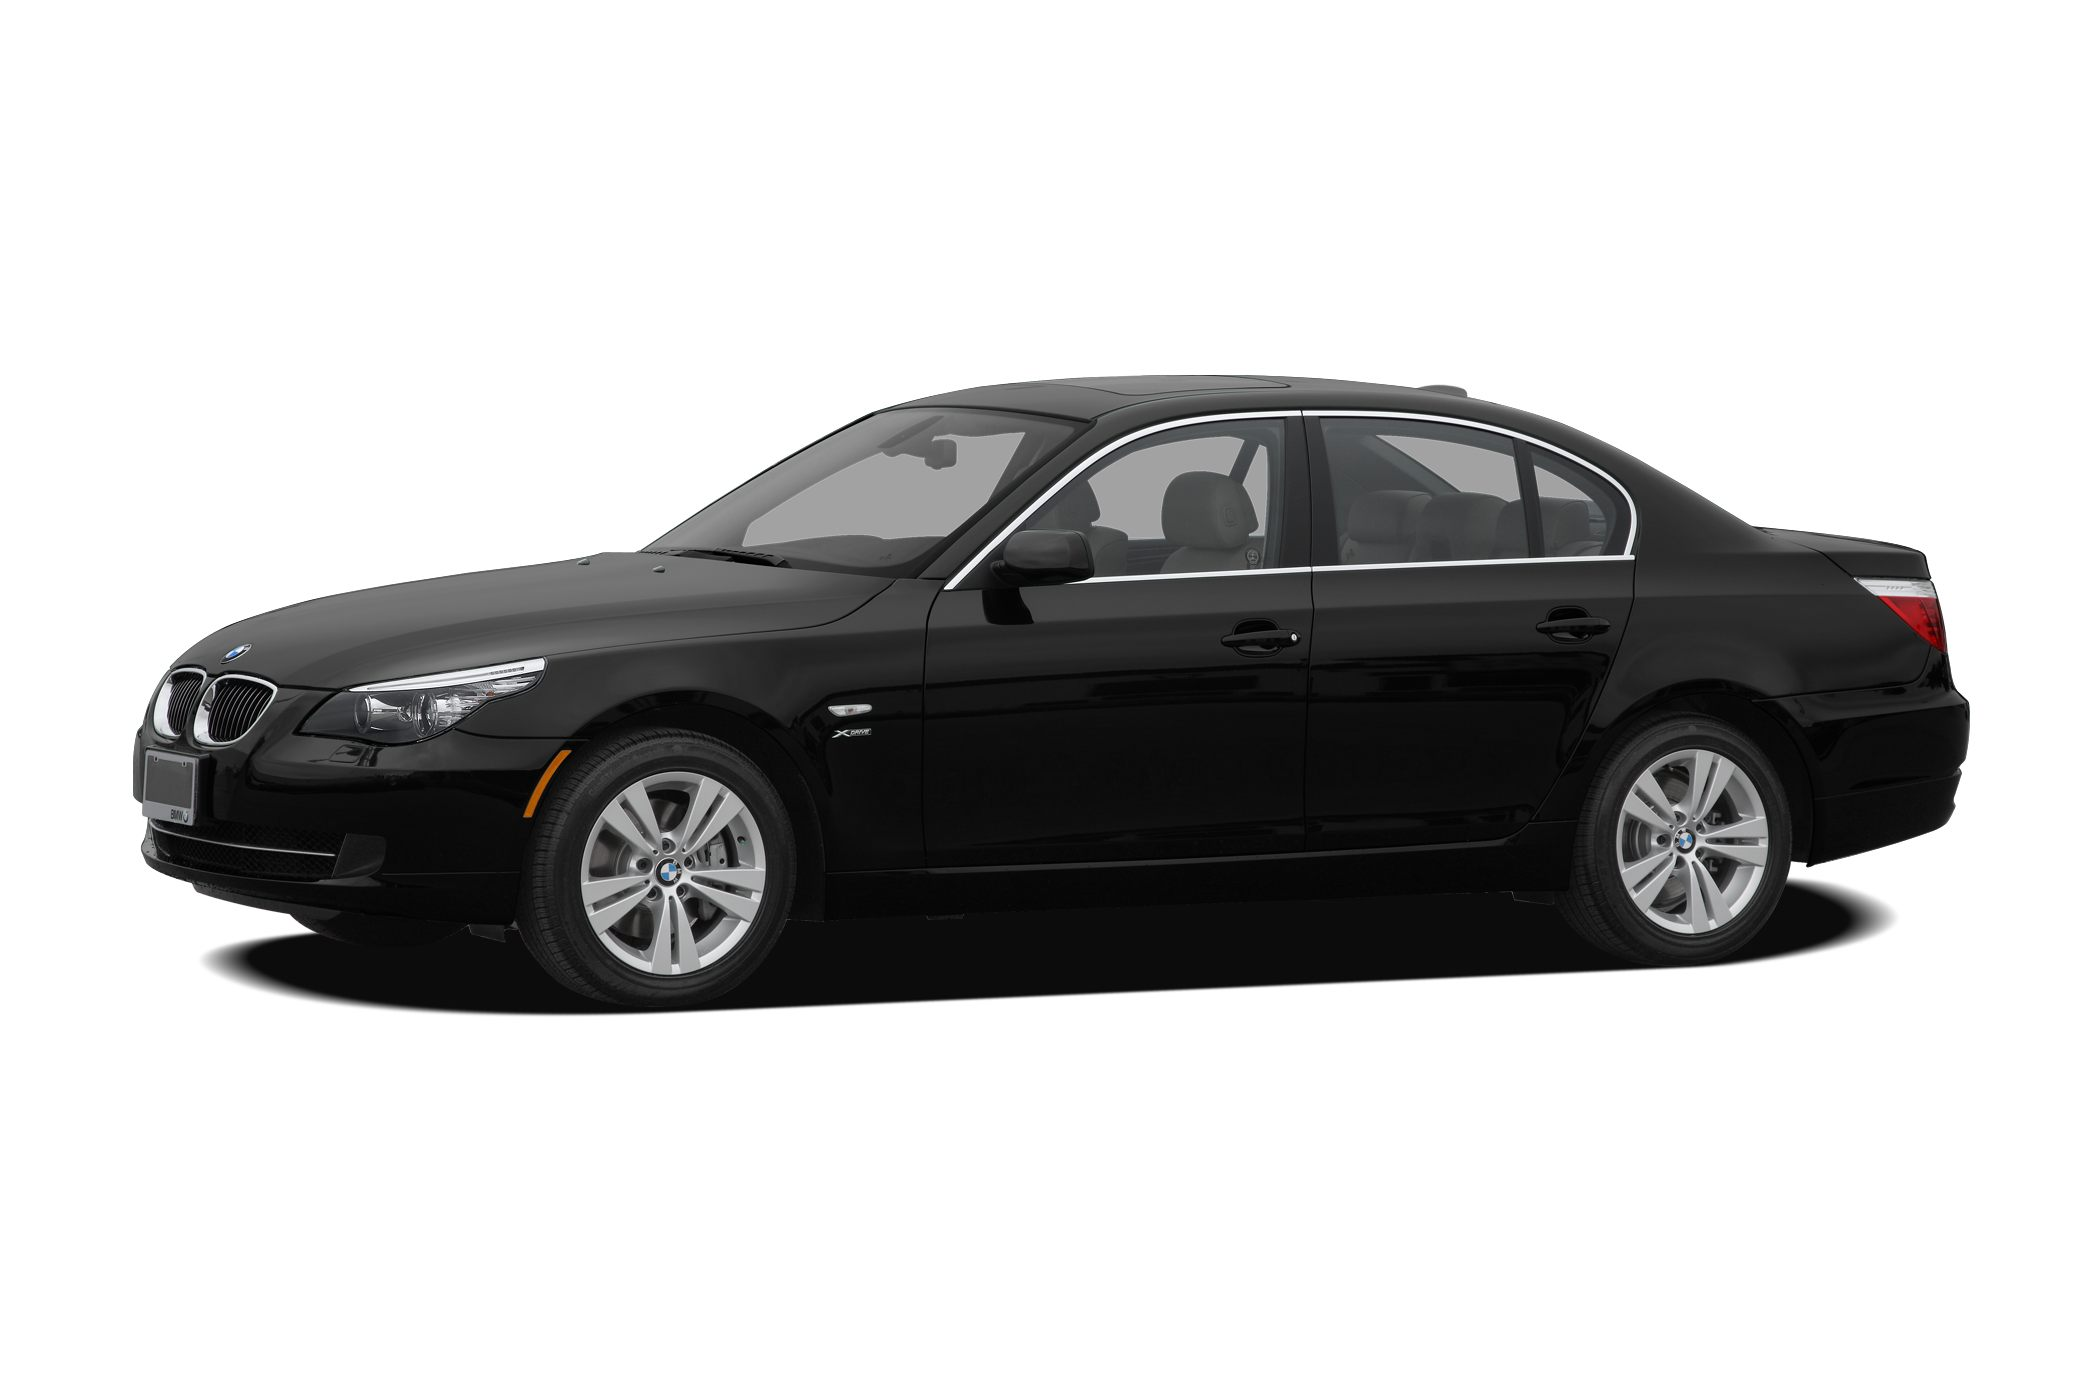 2010 BMW 535 i 4dr Rear wheel Drive Sedan Pricing and Options